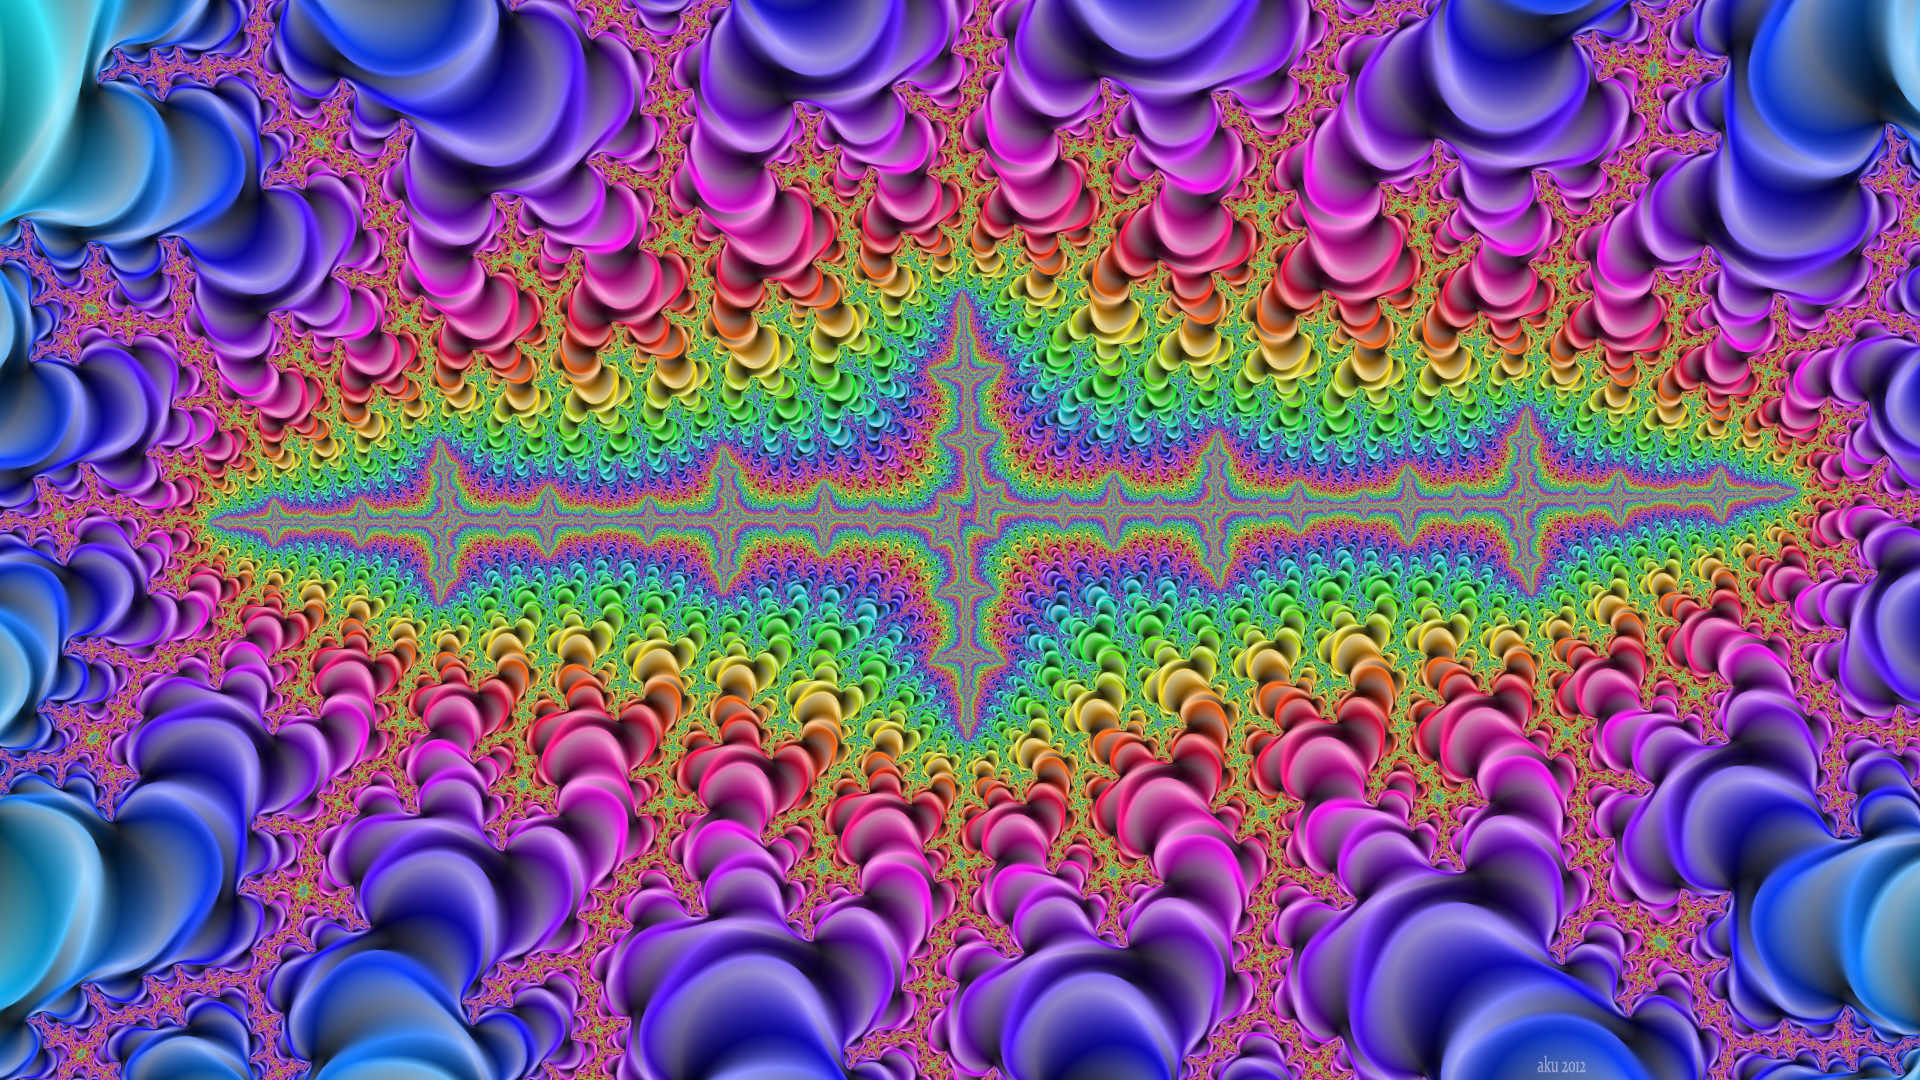 Psychedelic Computer Wallpapers Desktop Backgrounds 1920x1080 ID 1920x1080